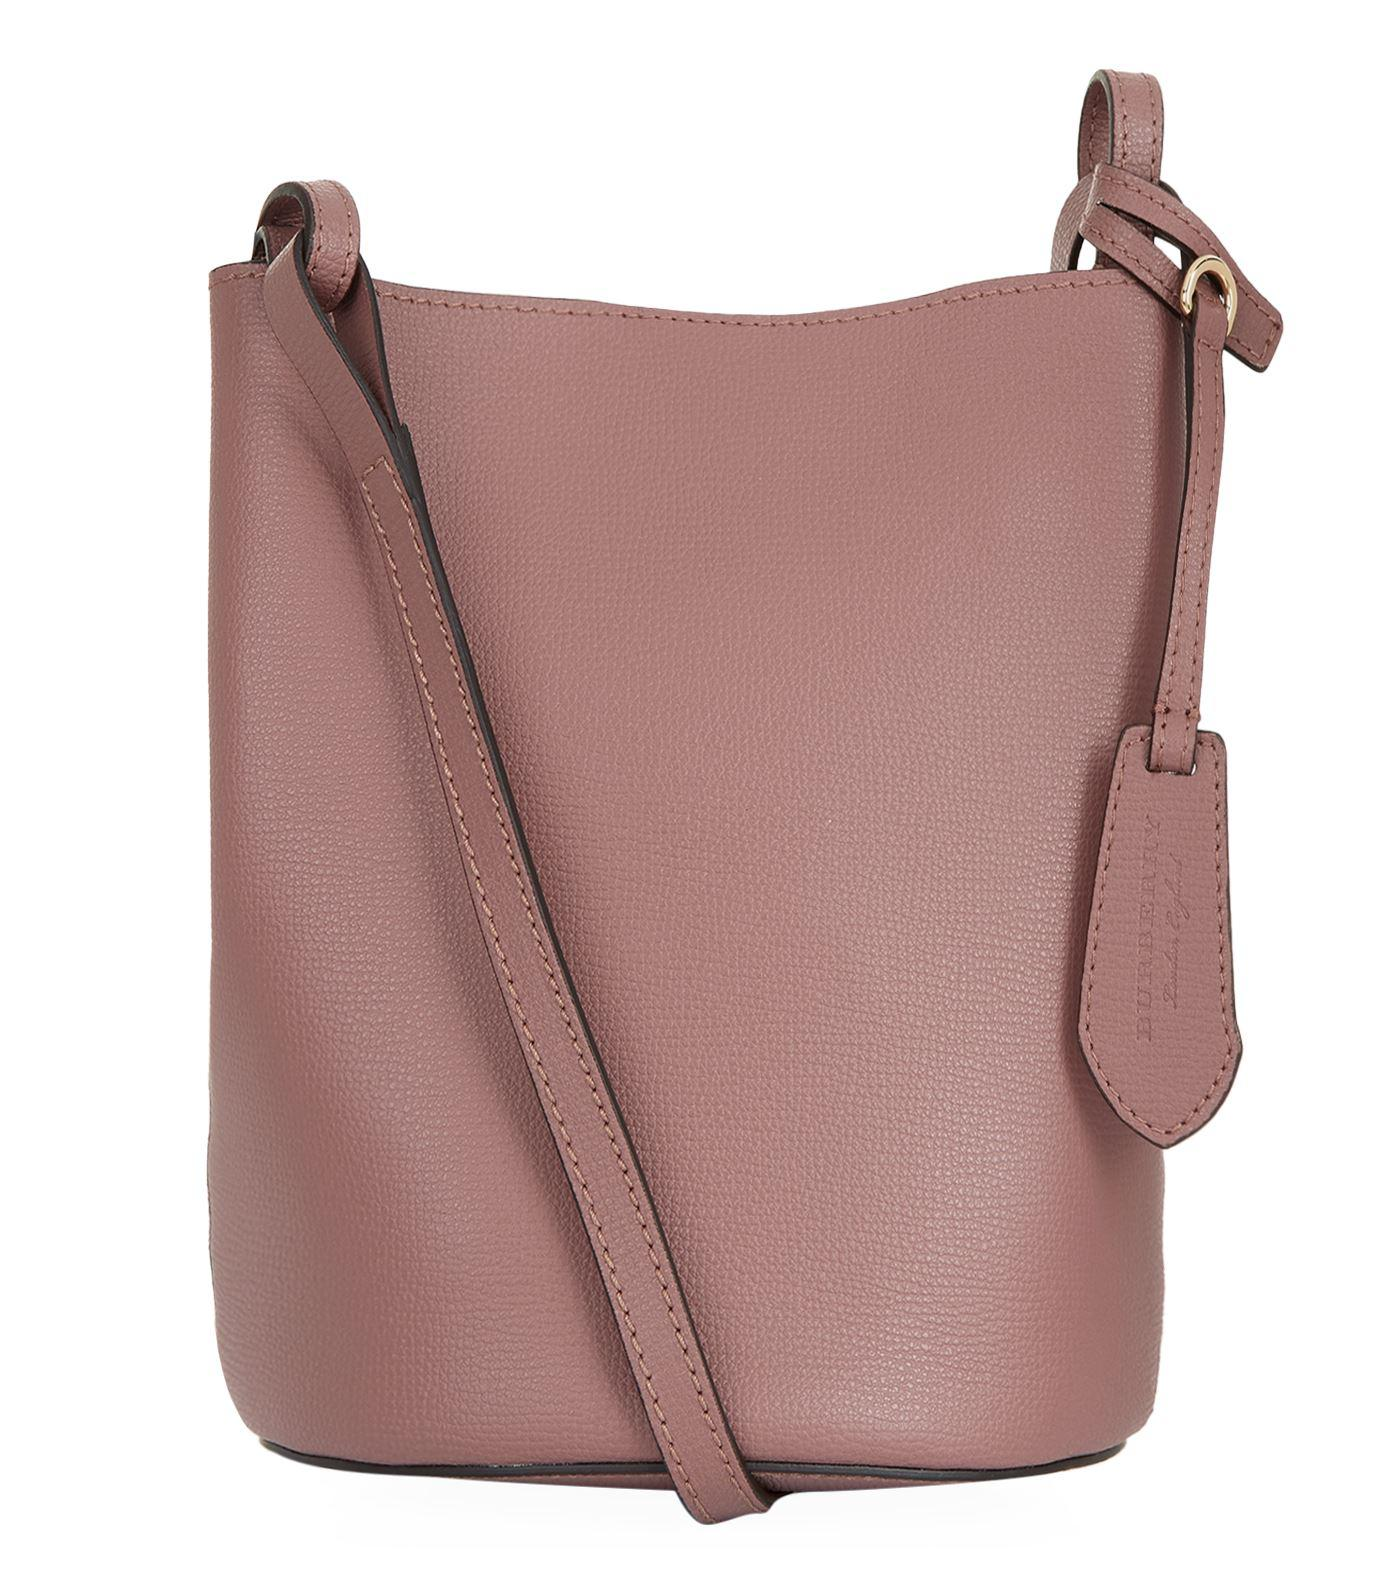 cde3ed49bb8f Burberry Small Lorne Leather Bucket Bag in Purple - Lyst